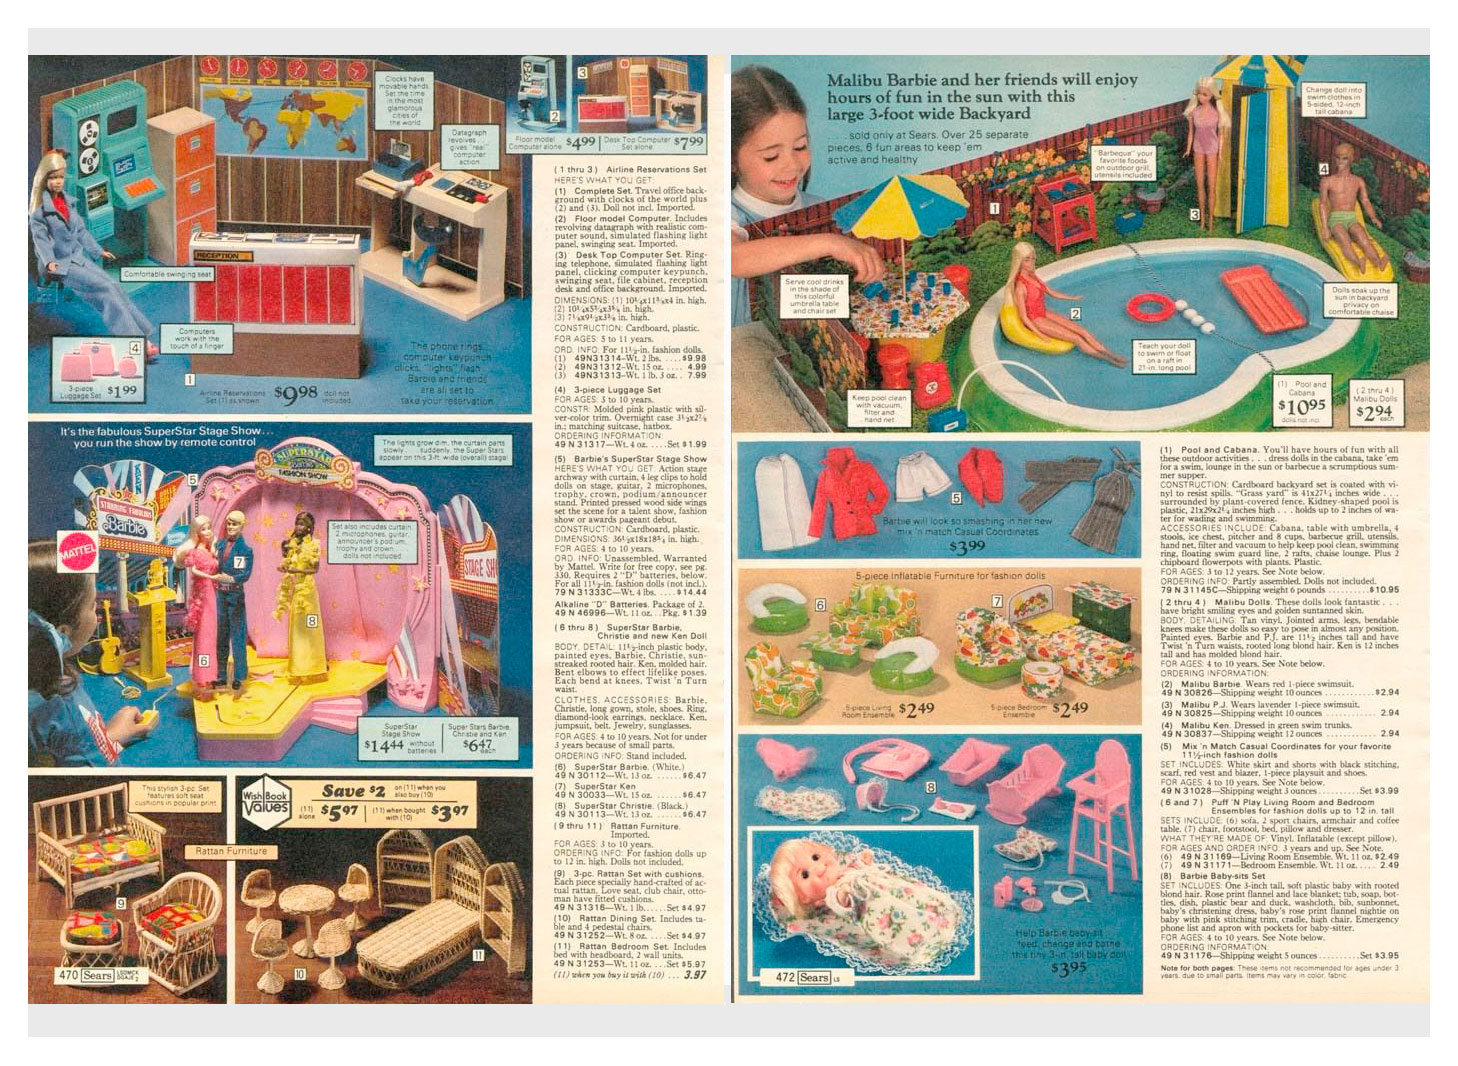 From 1978 Sears Wish Book